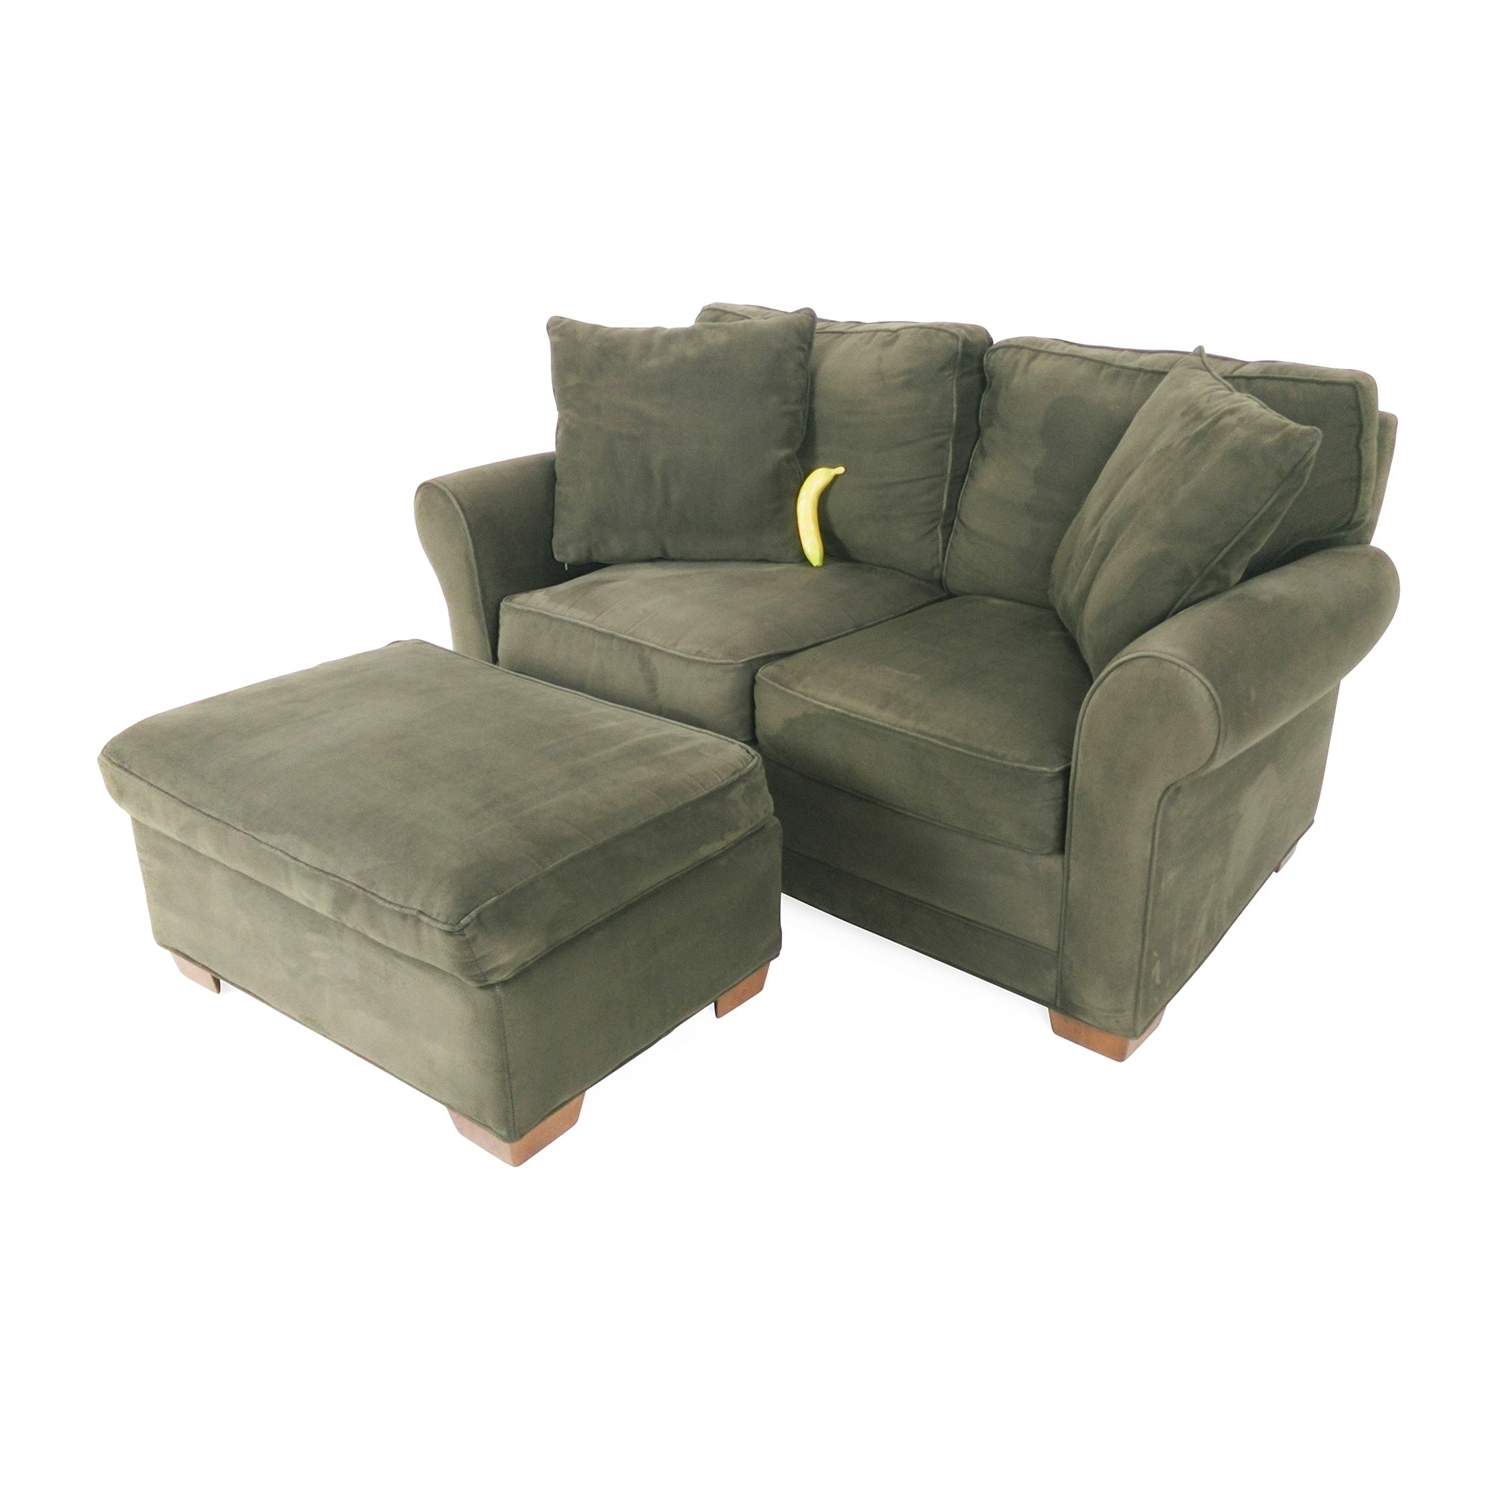 [%78% Off – Raymour And Flanigan Raymour And Flanigan Love Seat And Within Recent Loveseats With Ottoman|Loveseats With Ottoman Inside 2018 78% Off – Raymour And Flanigan Raymour And Flanigan Love Seat And|Famous Loveseats With Ottoman Throughout 78% Off – Raymour And Flanigan Raymour And Flanigan Love Seat And|Well Liked 78% Off – Raymour And Flanigan Raymour And Flanigan Love Seat And Regarding Loveseats With Ottoman%] (View 15 of 15)